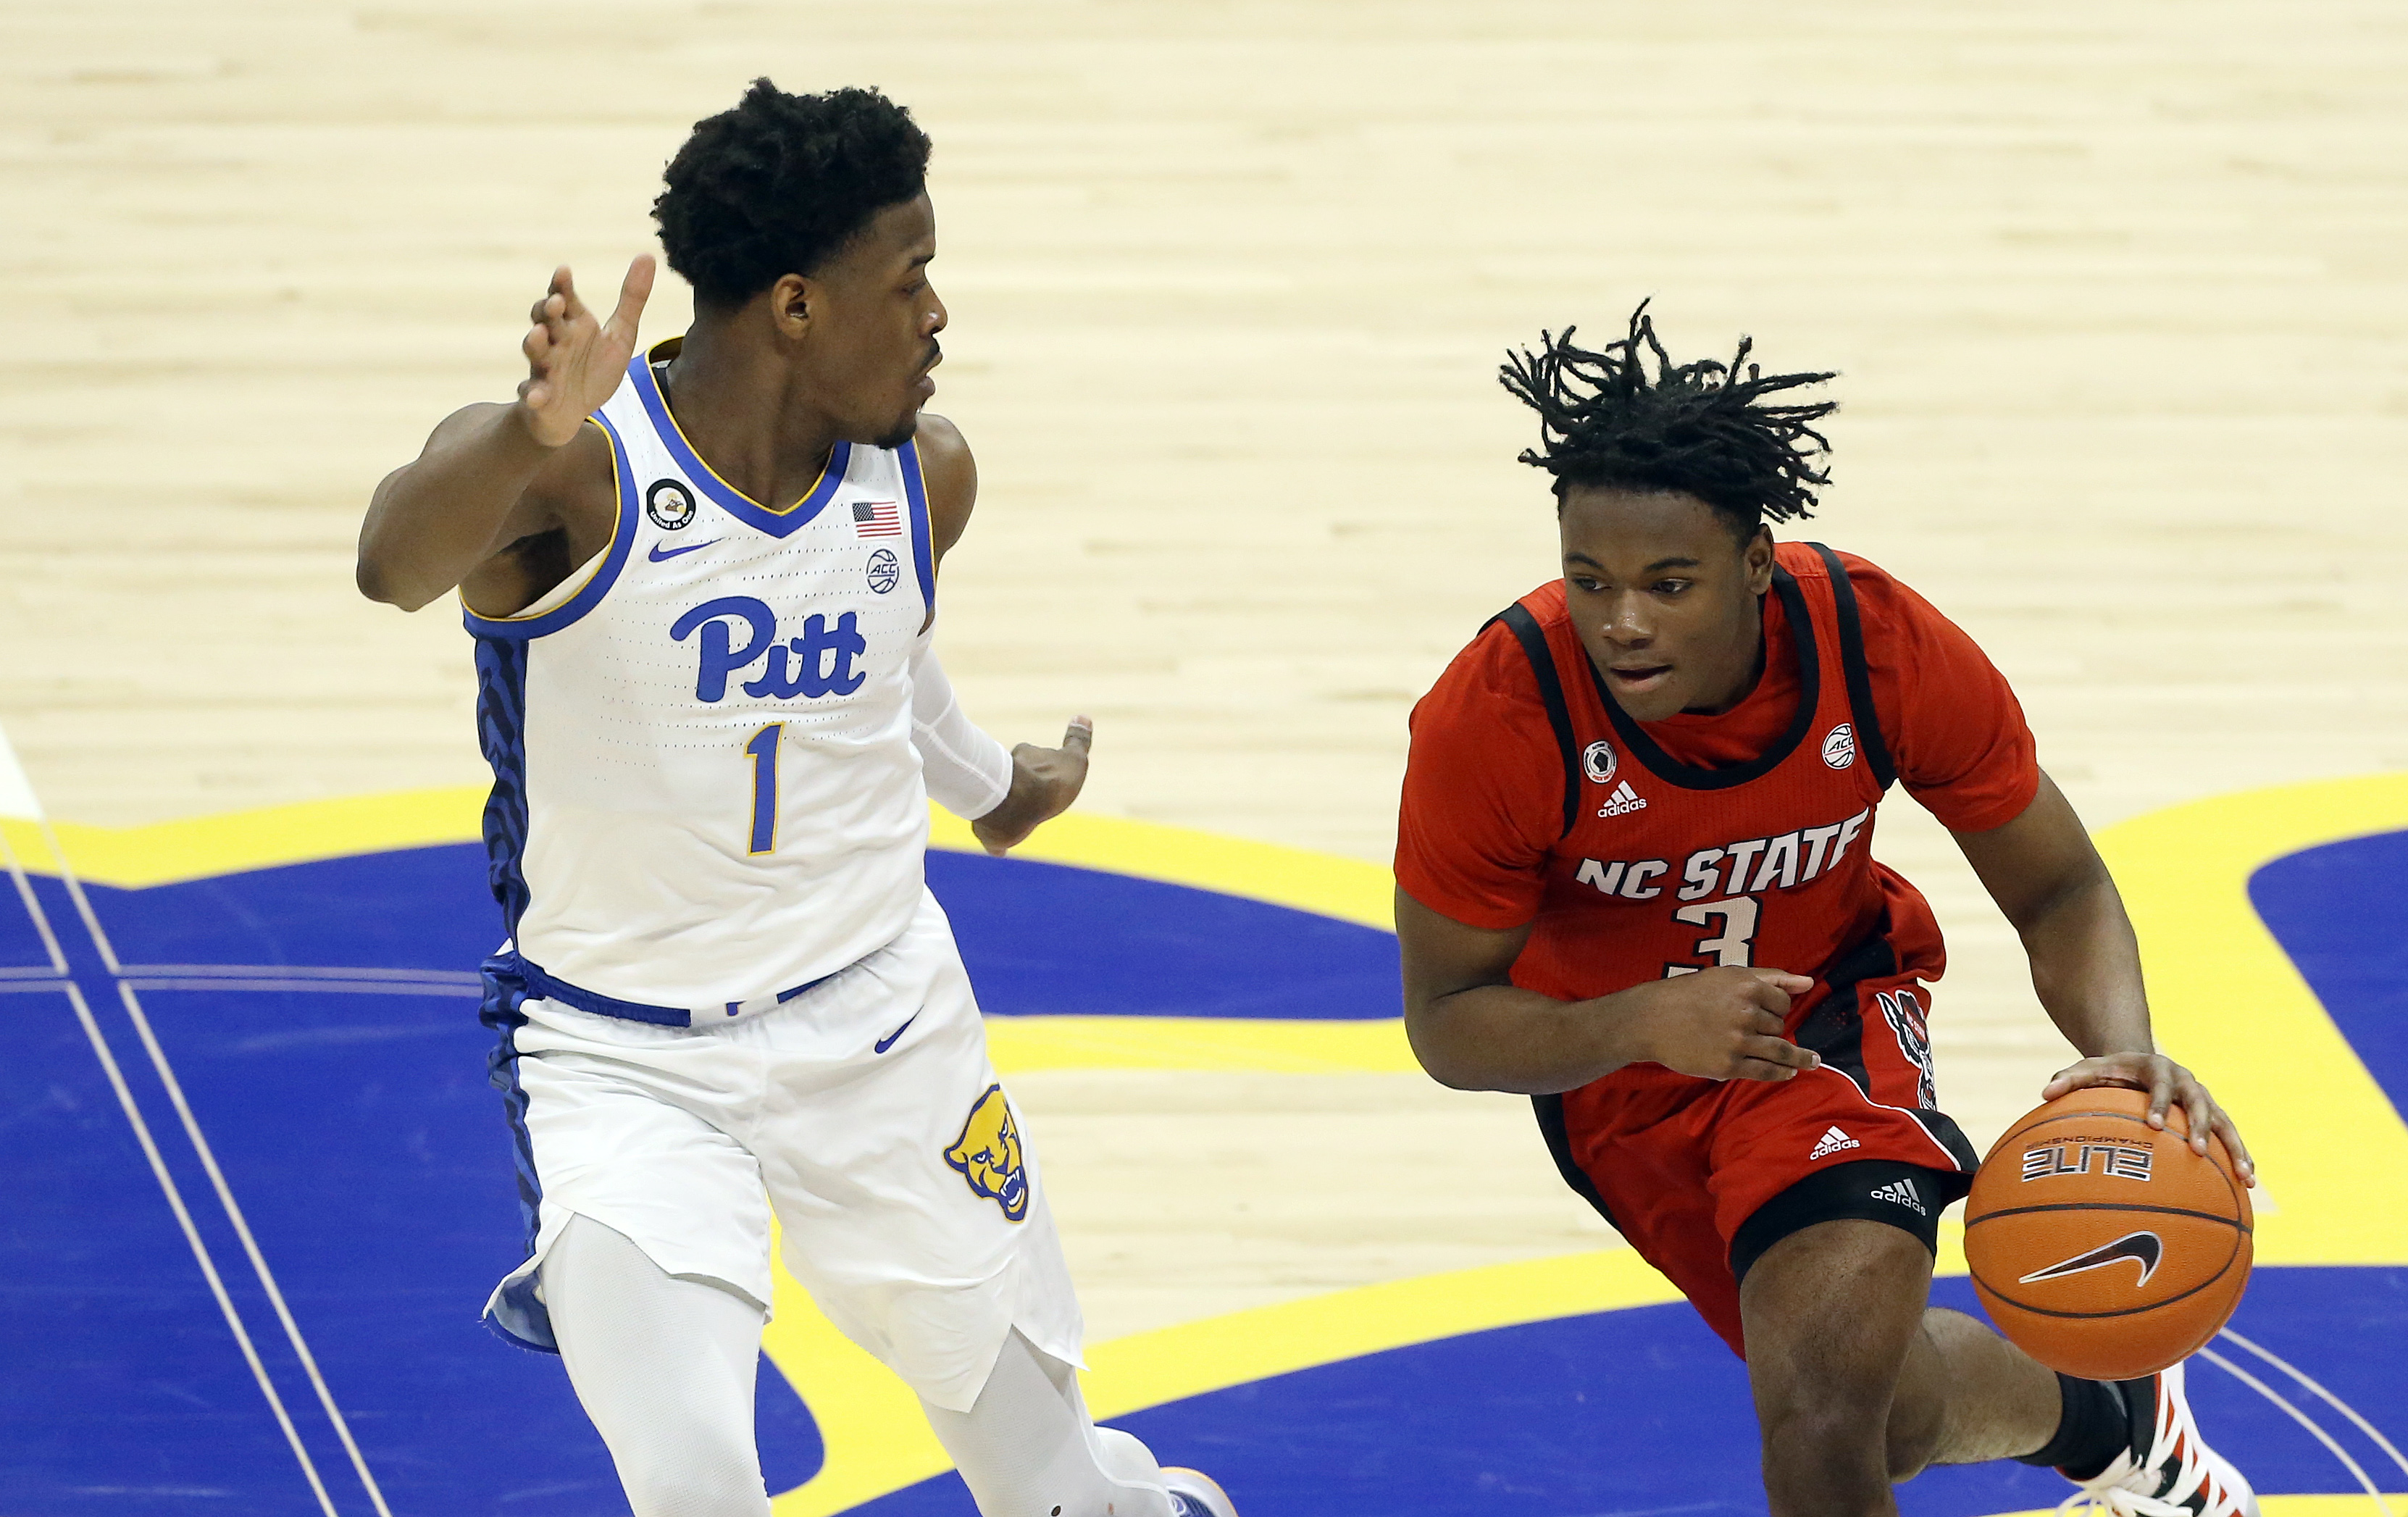 NCAA Basketball: N.C. State at Pittsburgh